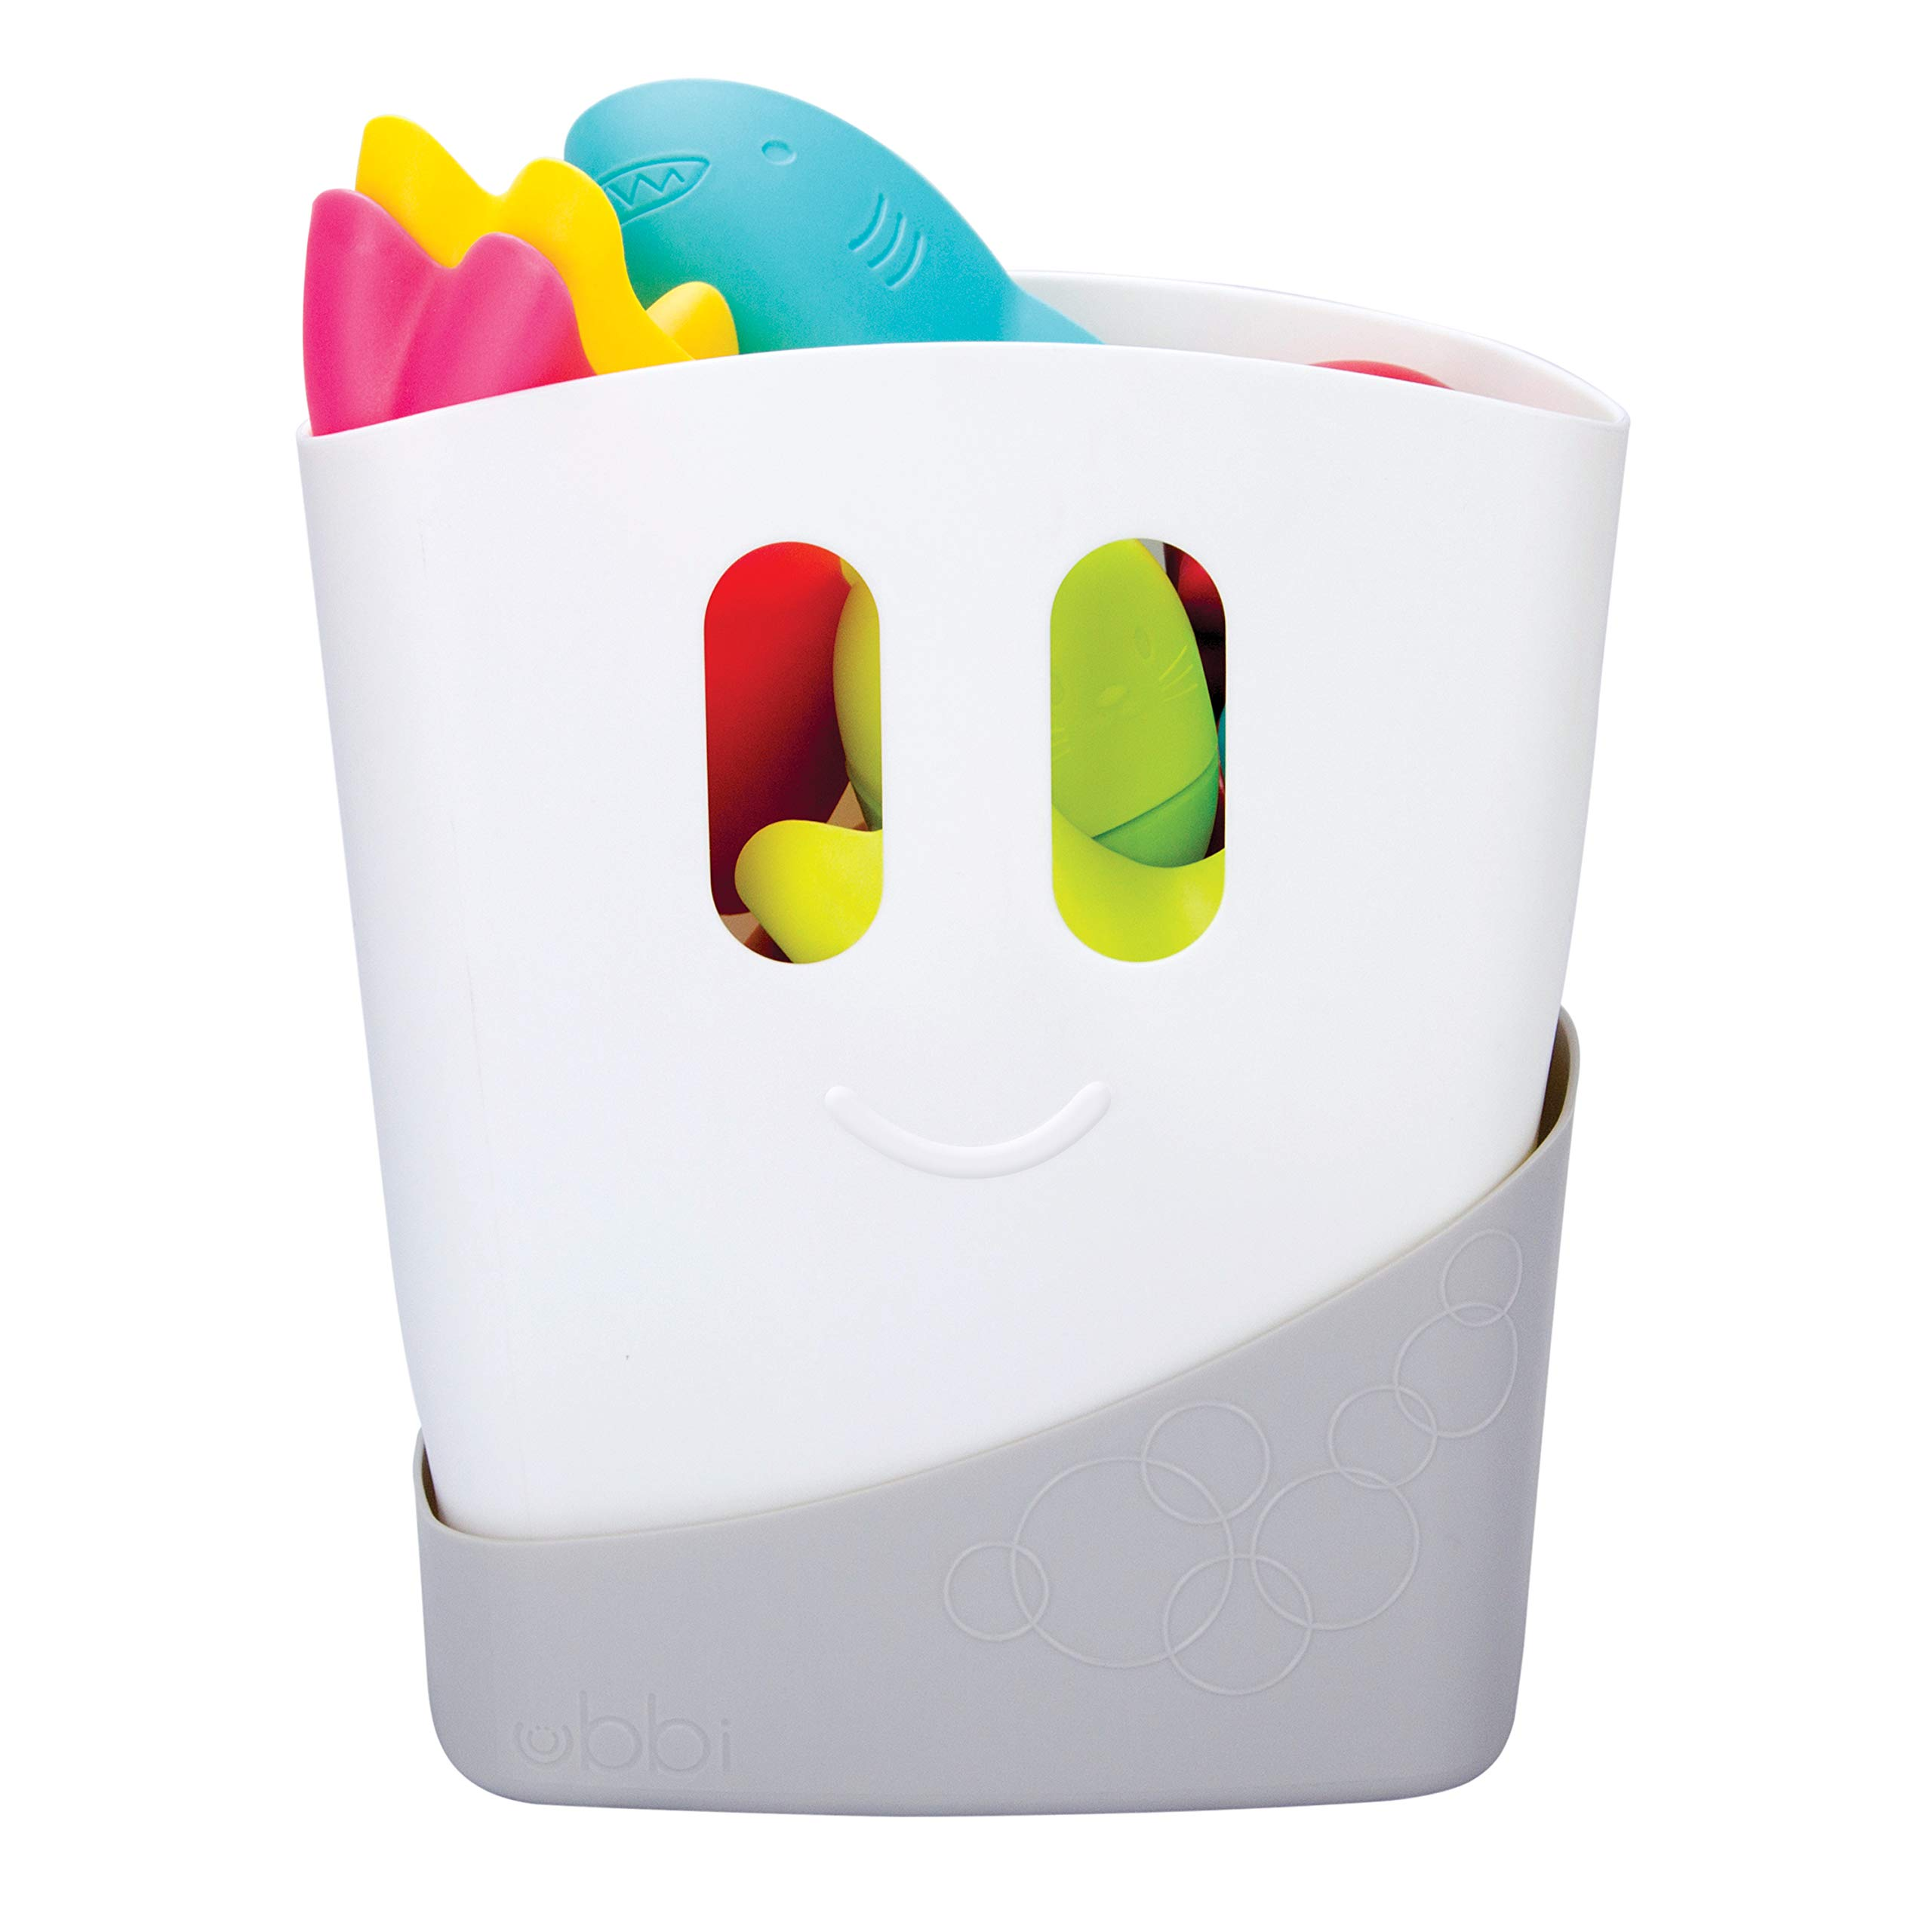 Ubbi Freestanding Organizer Removable Toddlers